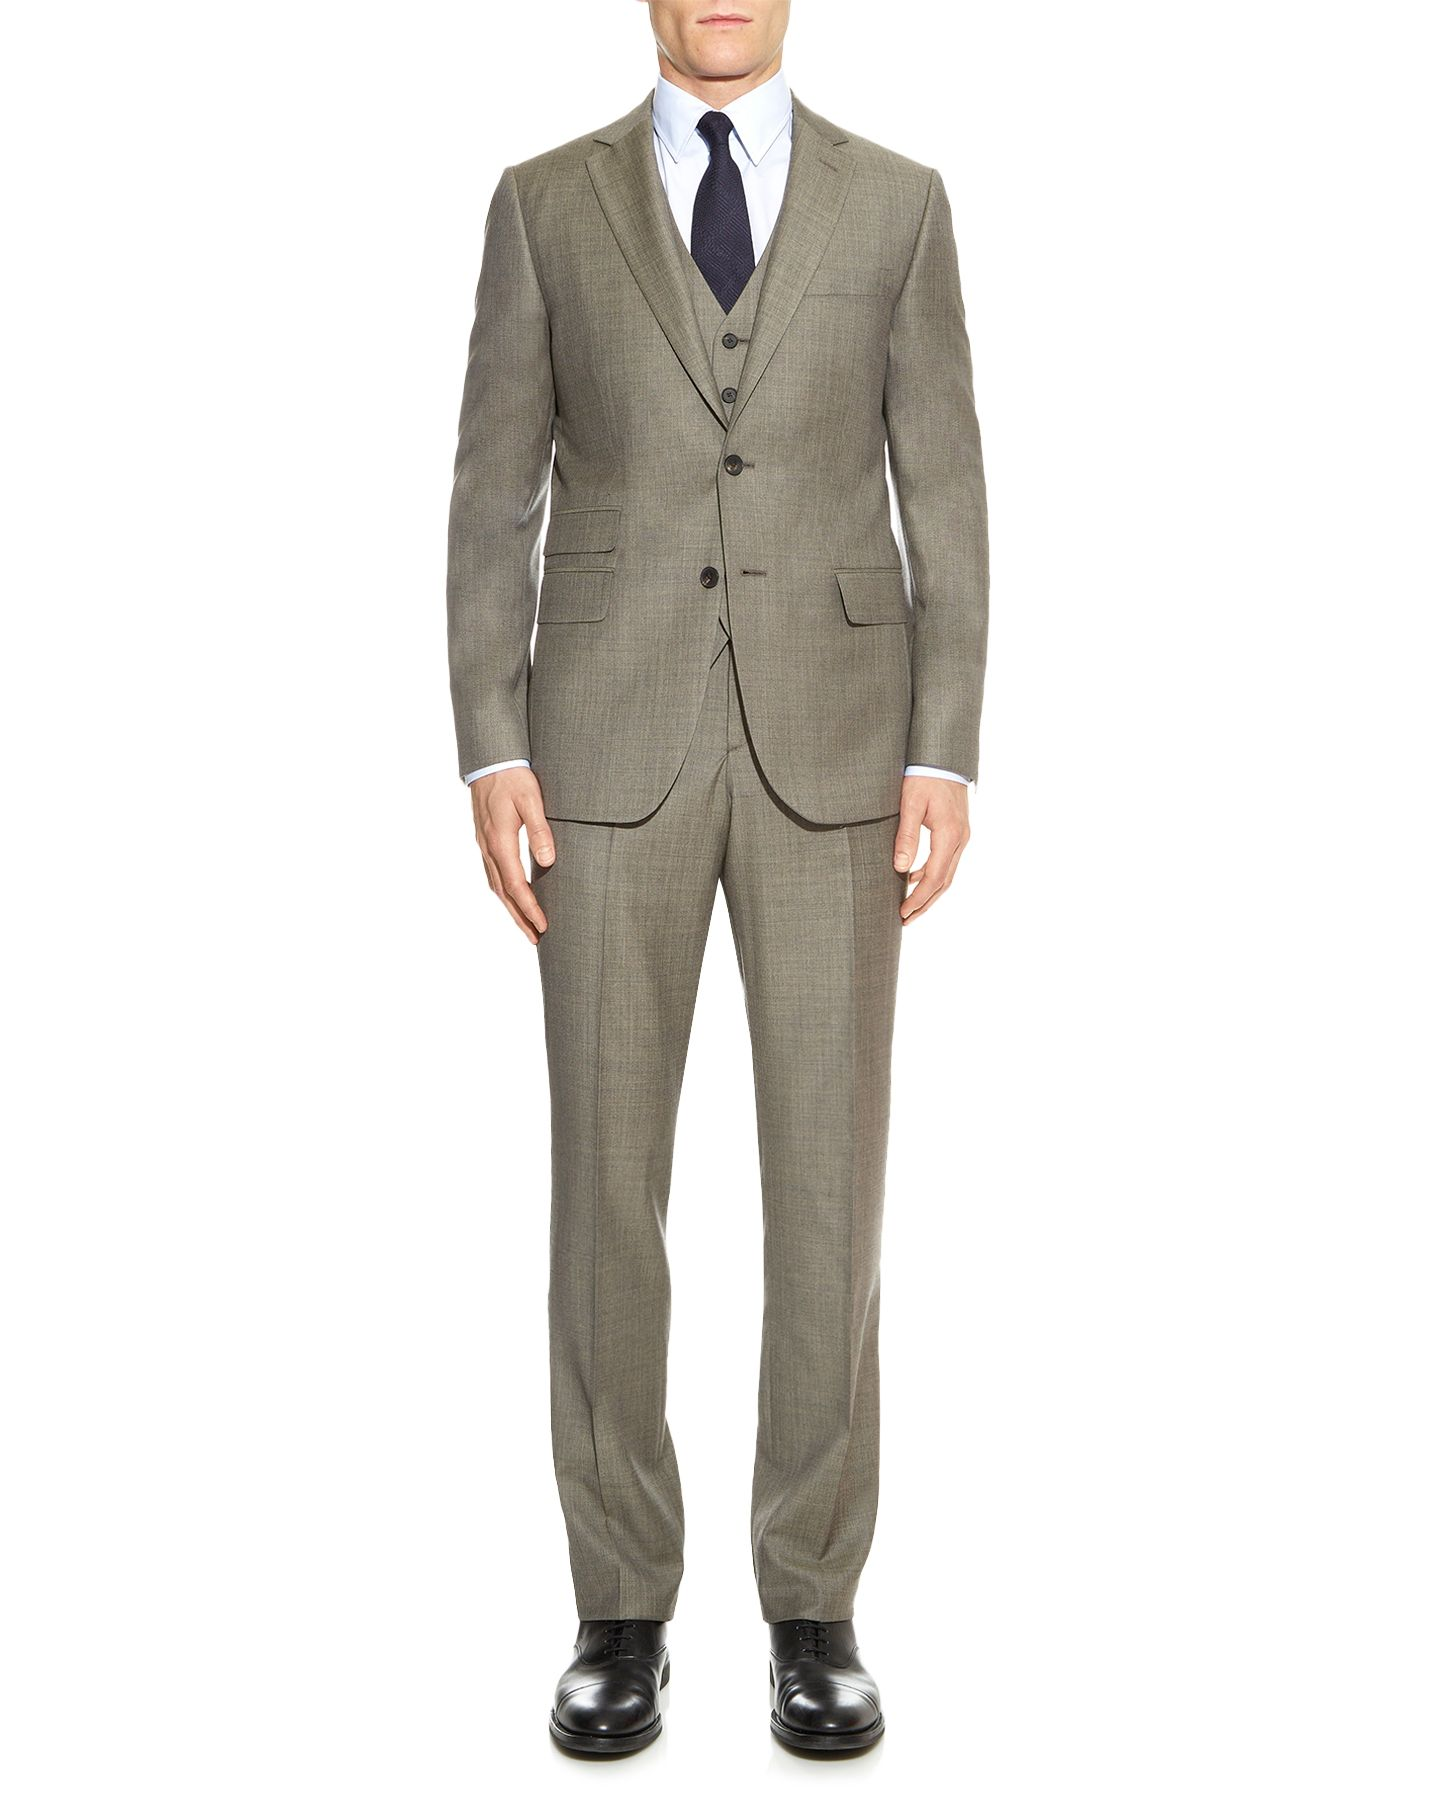 Heath egan three piece suit